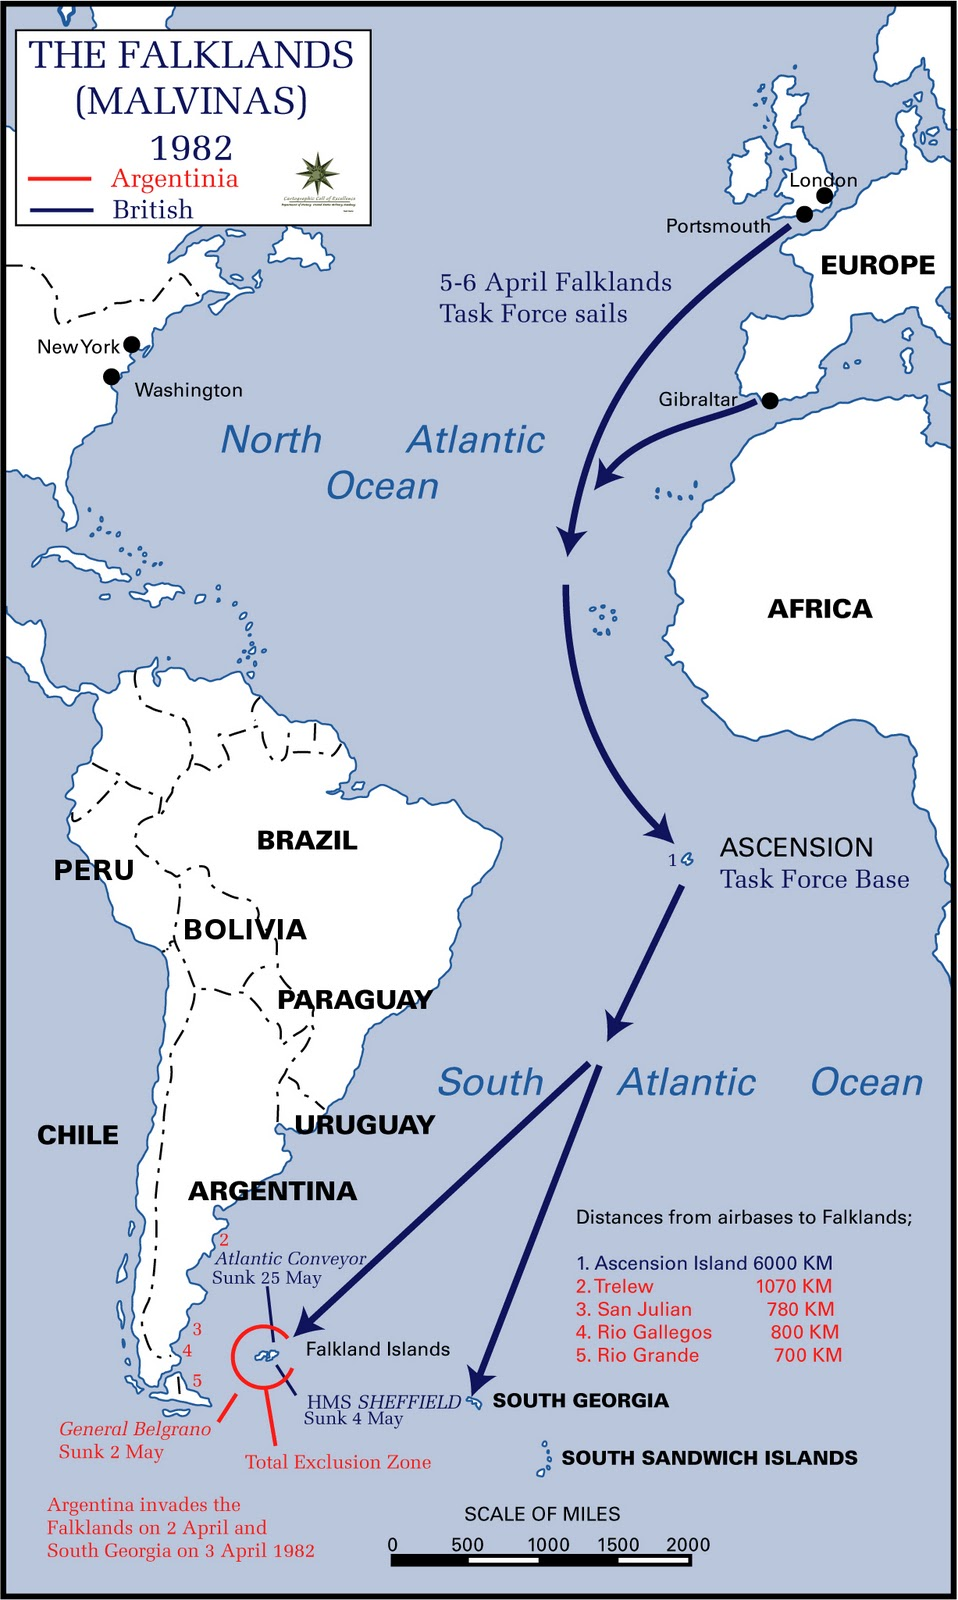 air campaign in falklands war essay This article describes the composition and actions of the argentine air forces in the falklands war (spanish language: guerra de las malvinas )  air campaign edit .